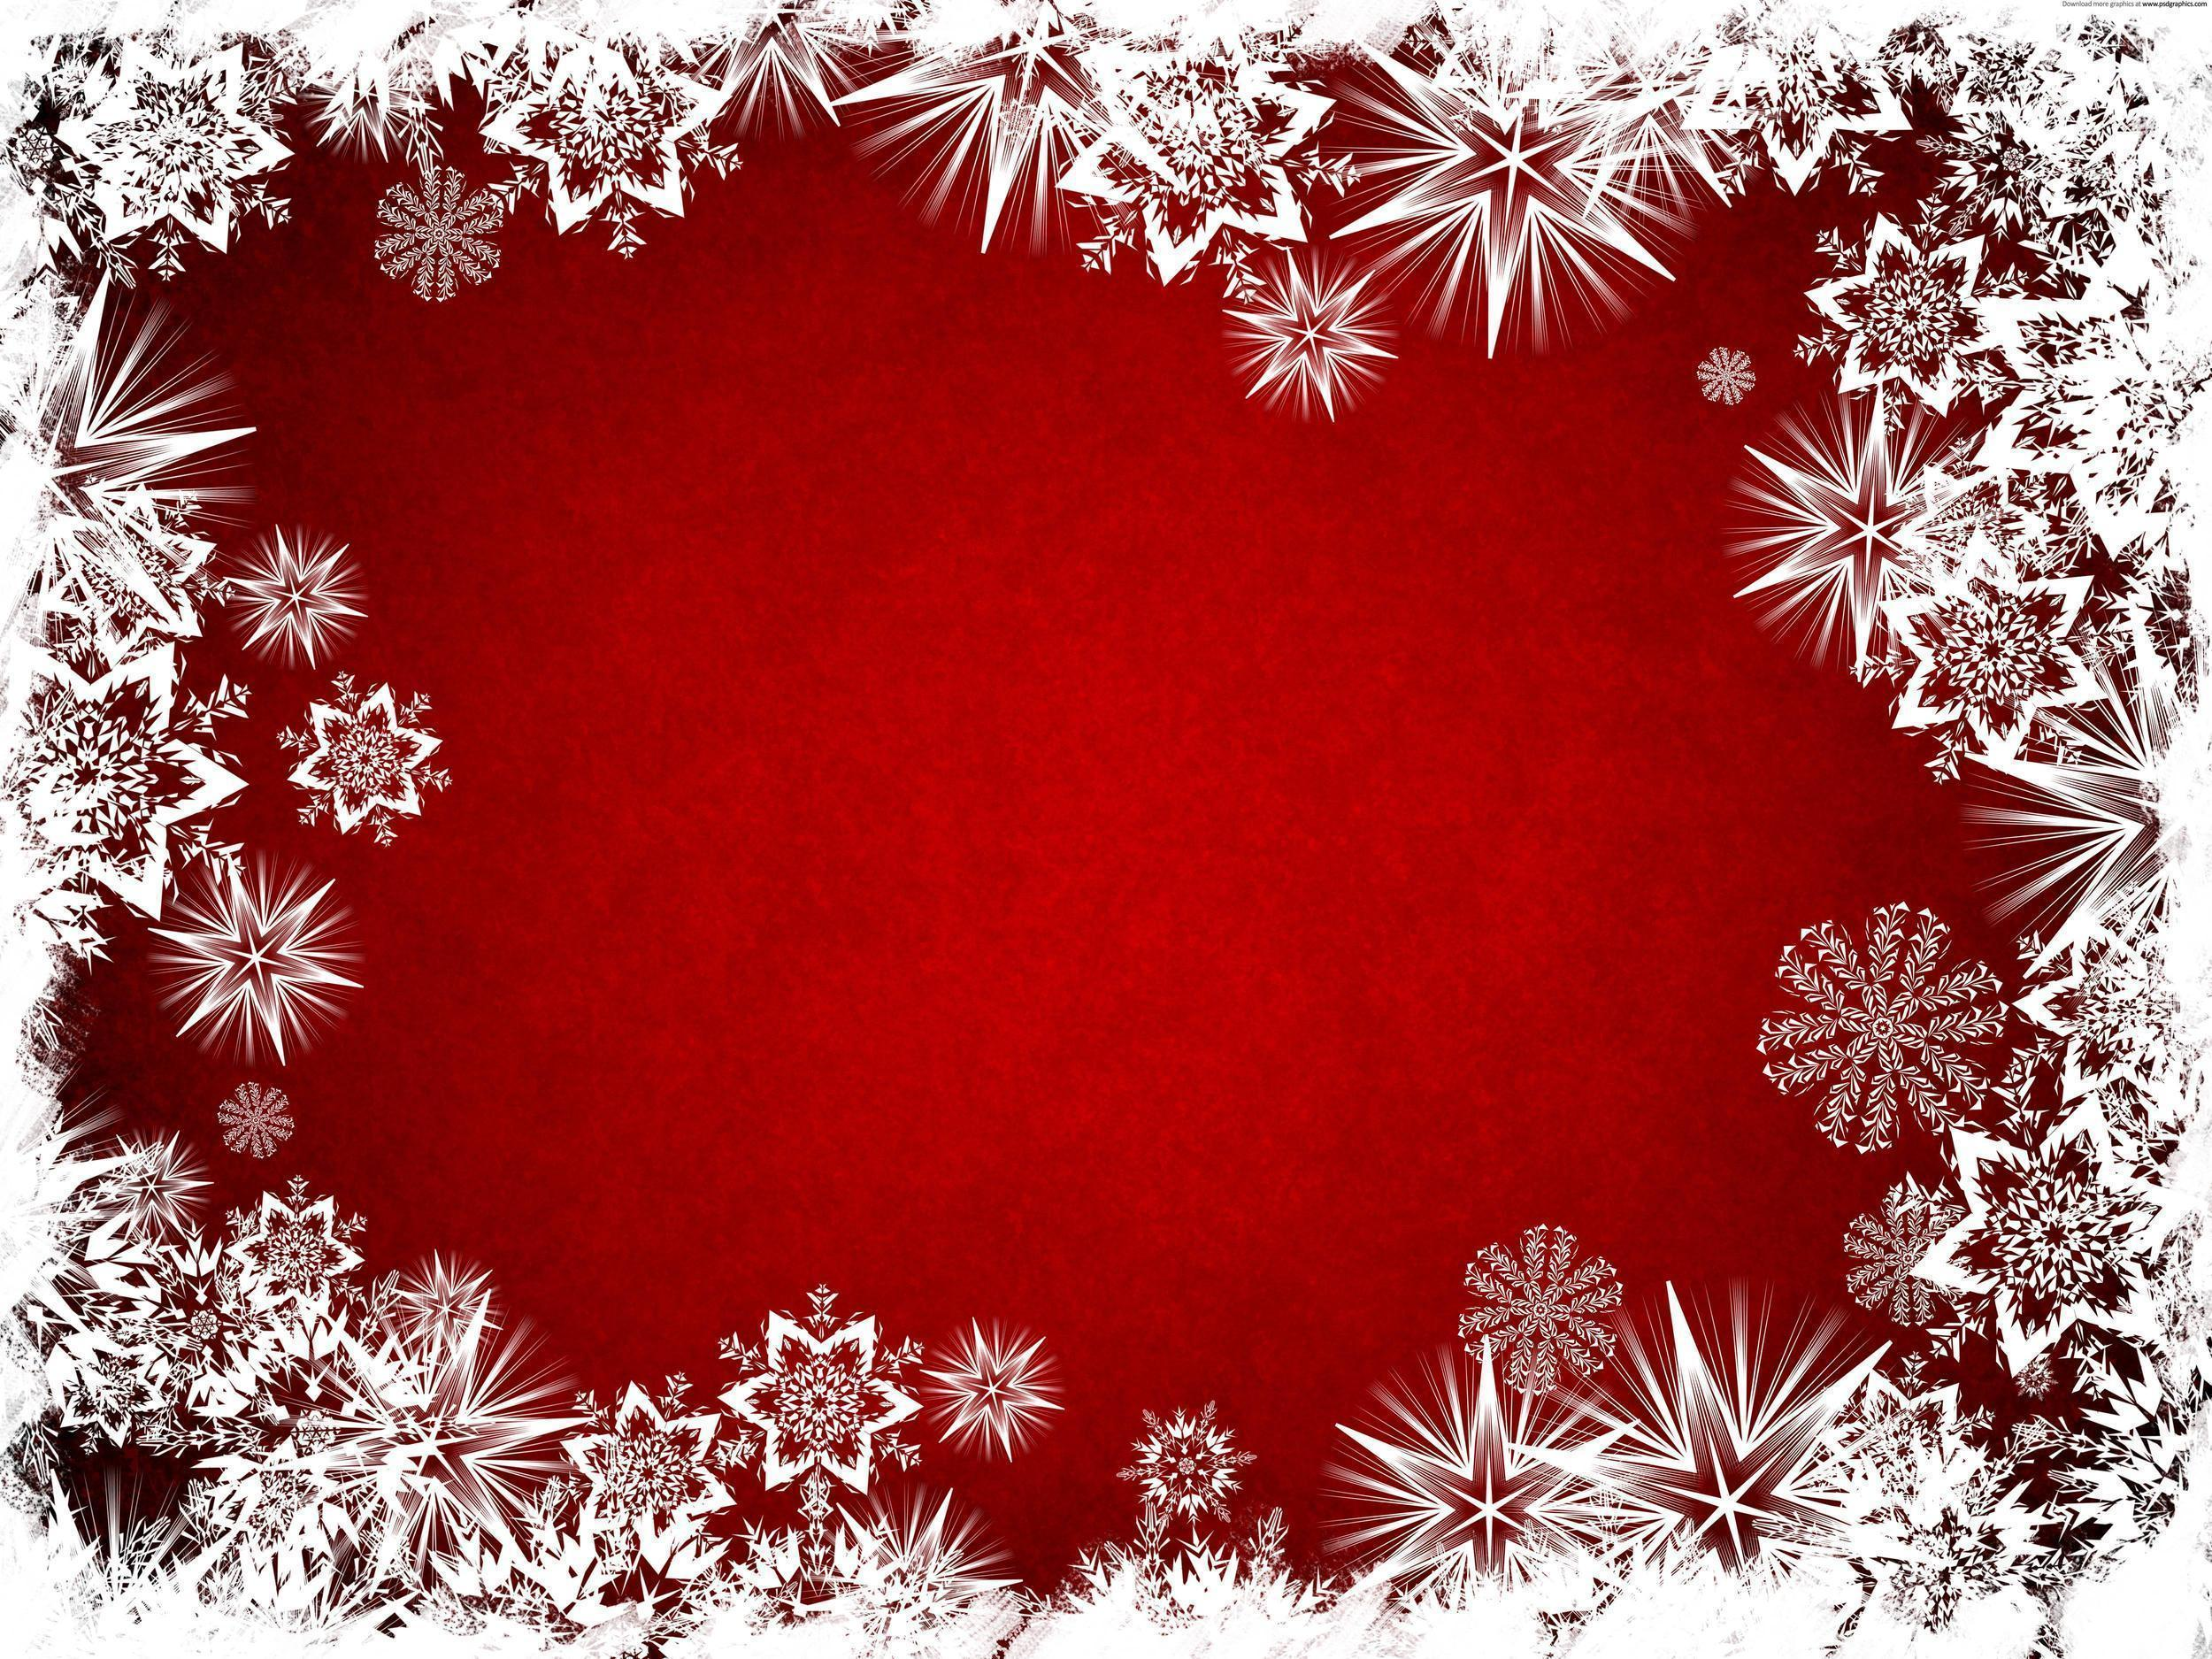 White stars on a red backgrounds on Christmas wallpapers and image